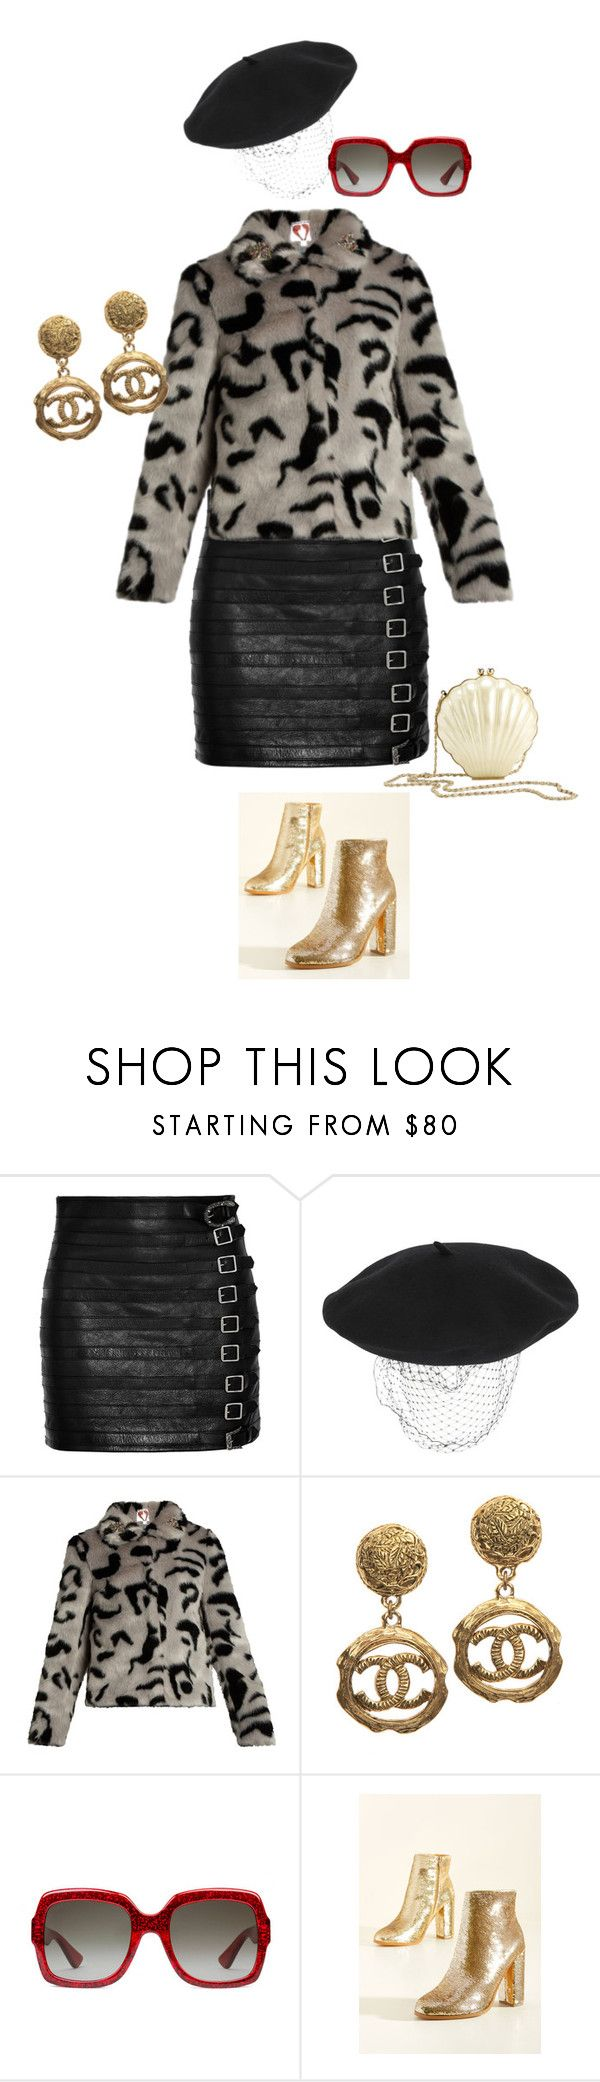 """""""III"""" by rolllingstones ❤ liked on Polyvore featuring Gucci, Silver Spoon Attire, Shrimps, WGACA, Reiss, vintage and fur"""